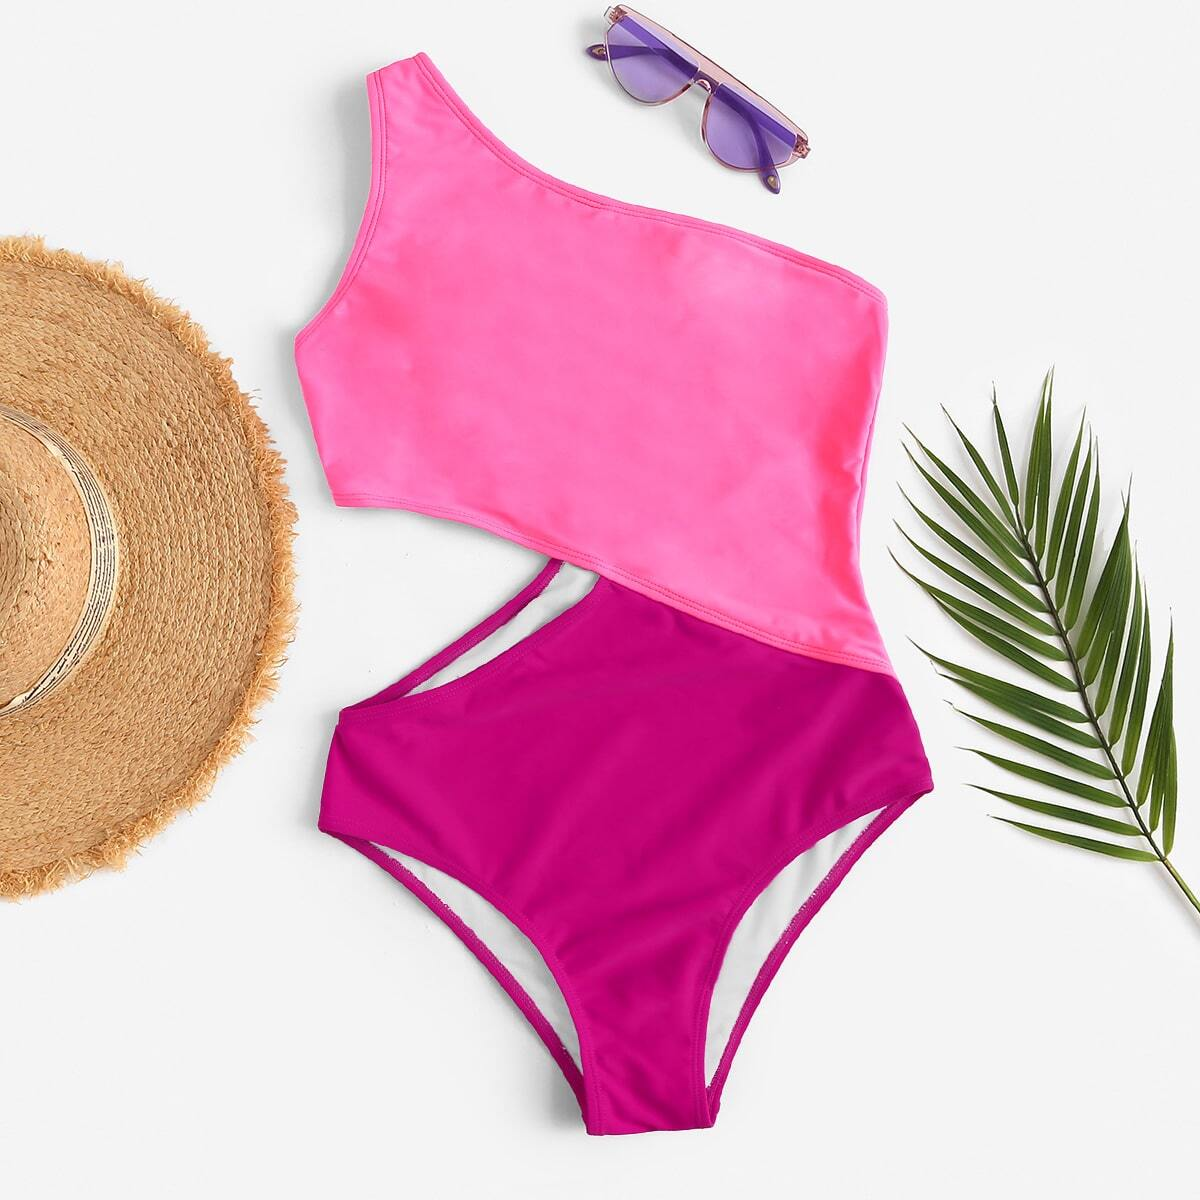 SHEIN coupon: Two Tone One Shoulder One Piece Swimsuit